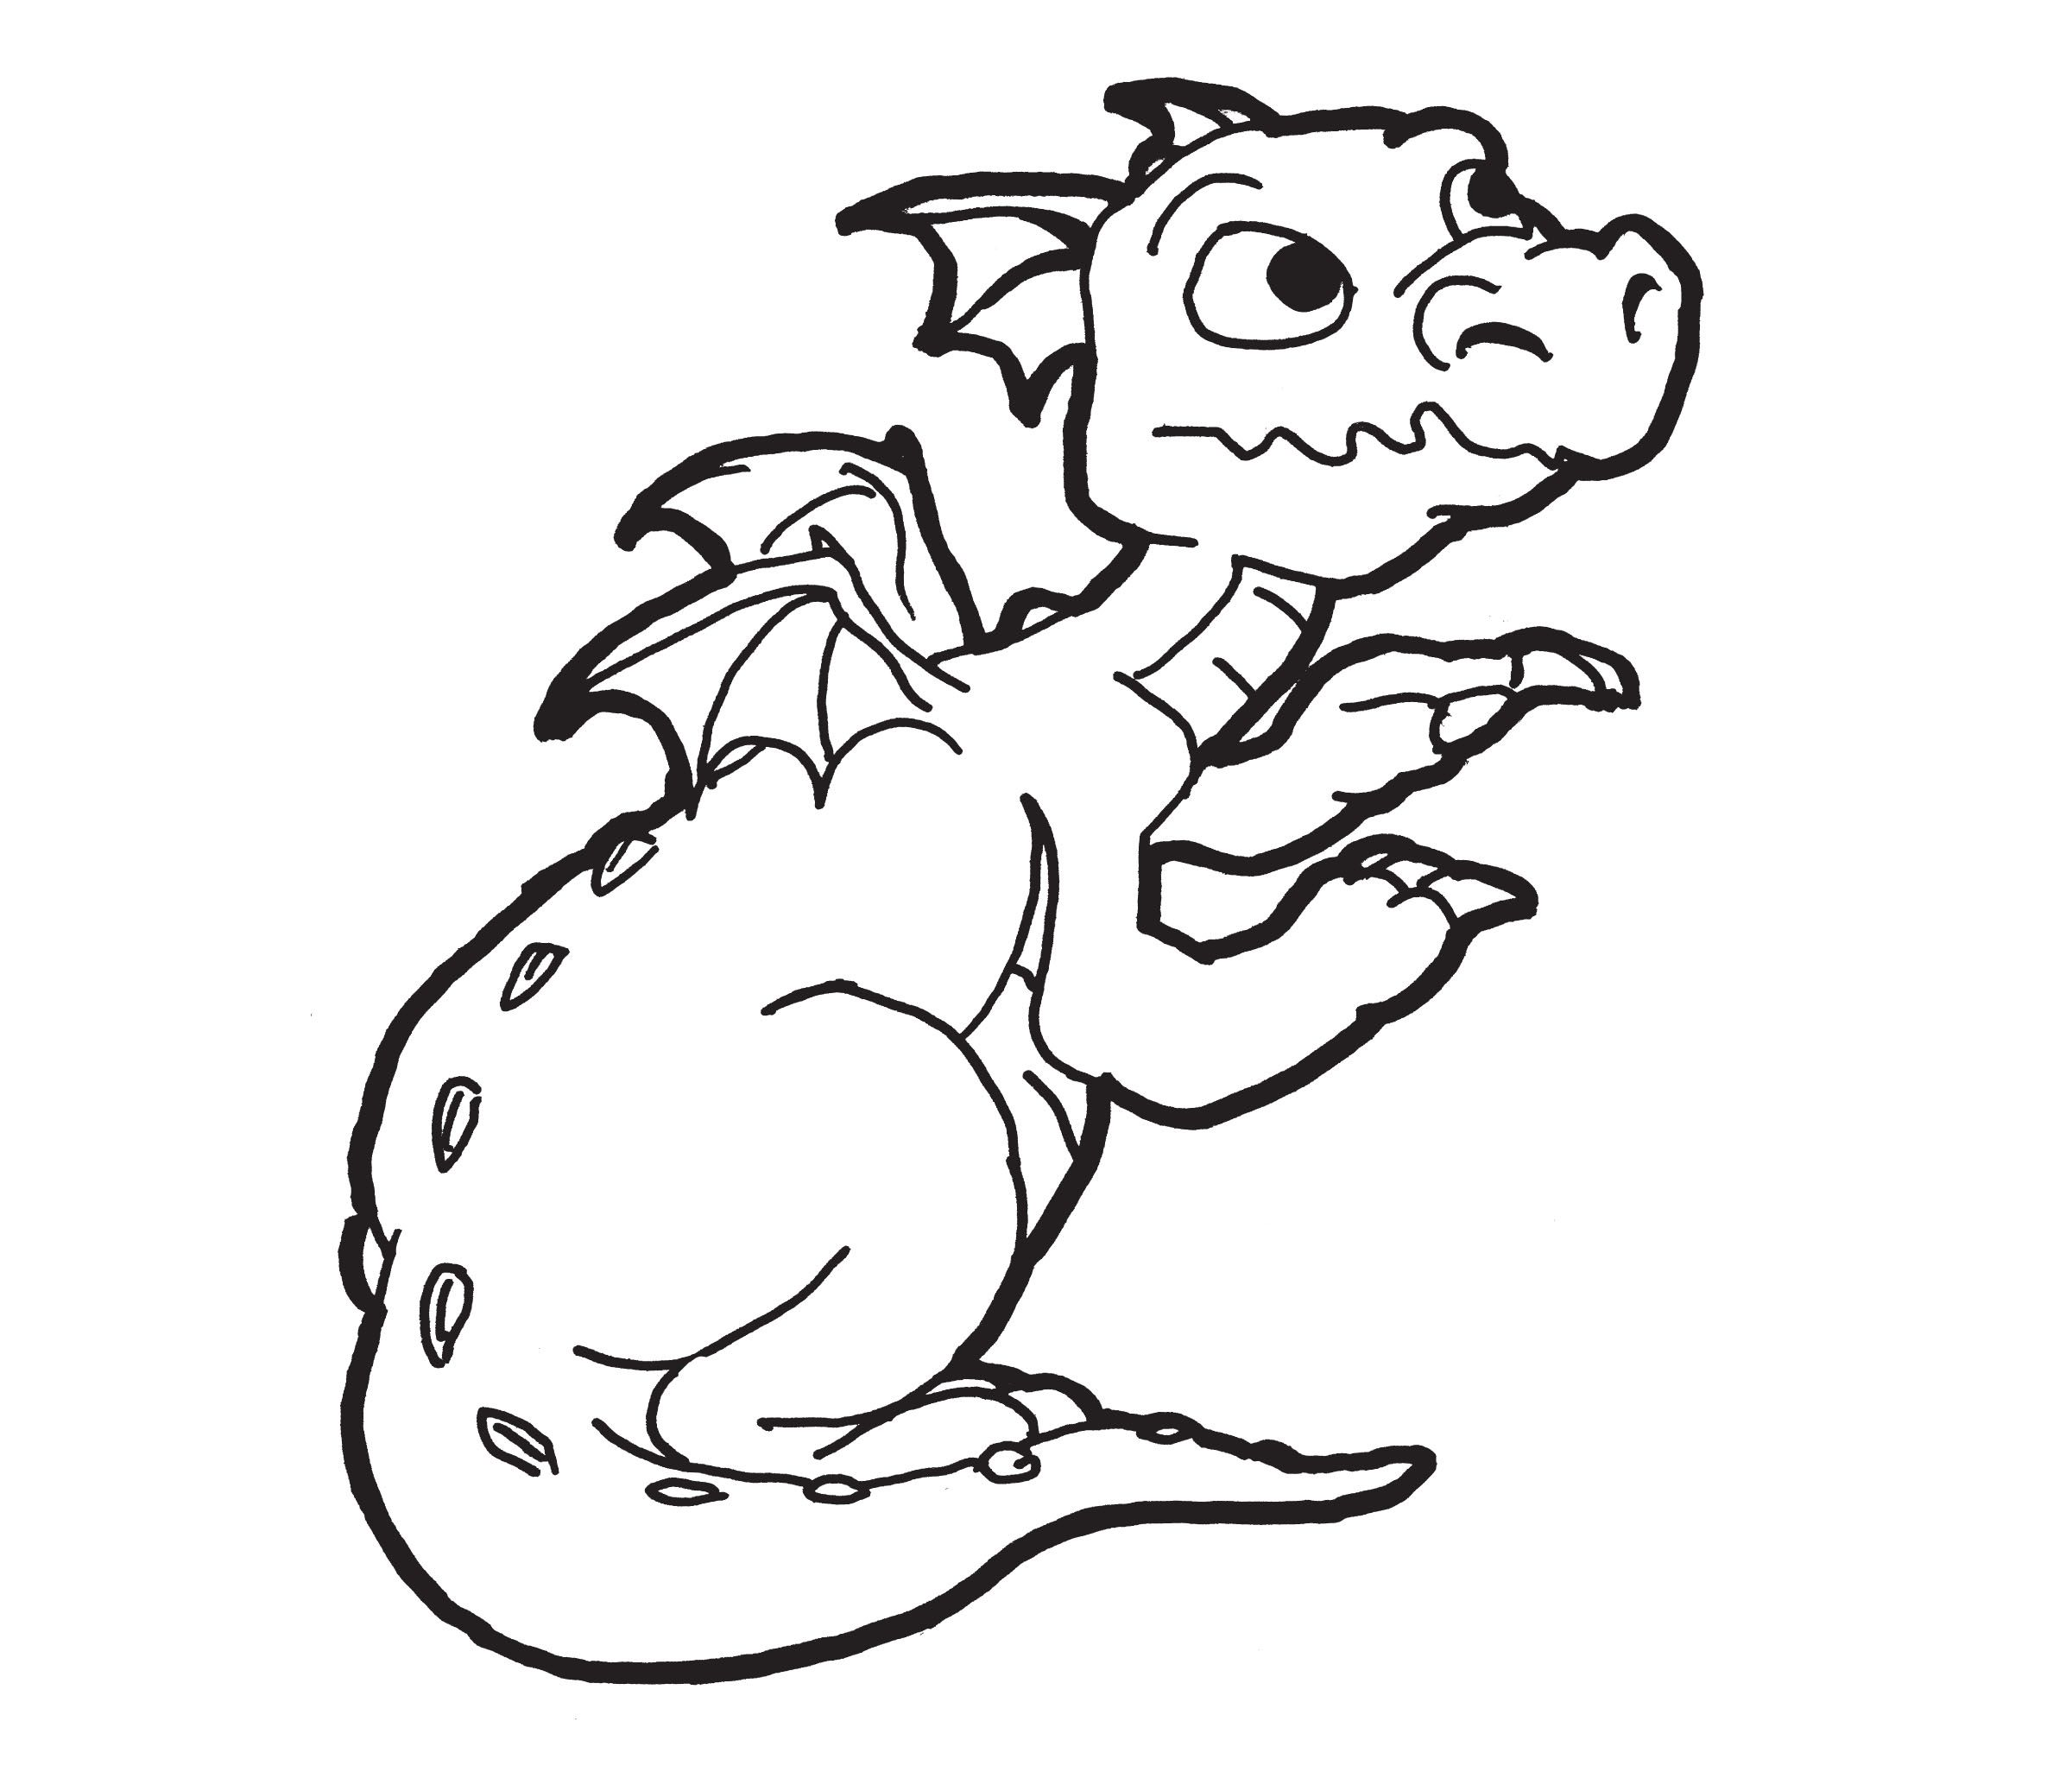 Free Printable Dragon Coloring Pages For Kids | More VBS ideals ...